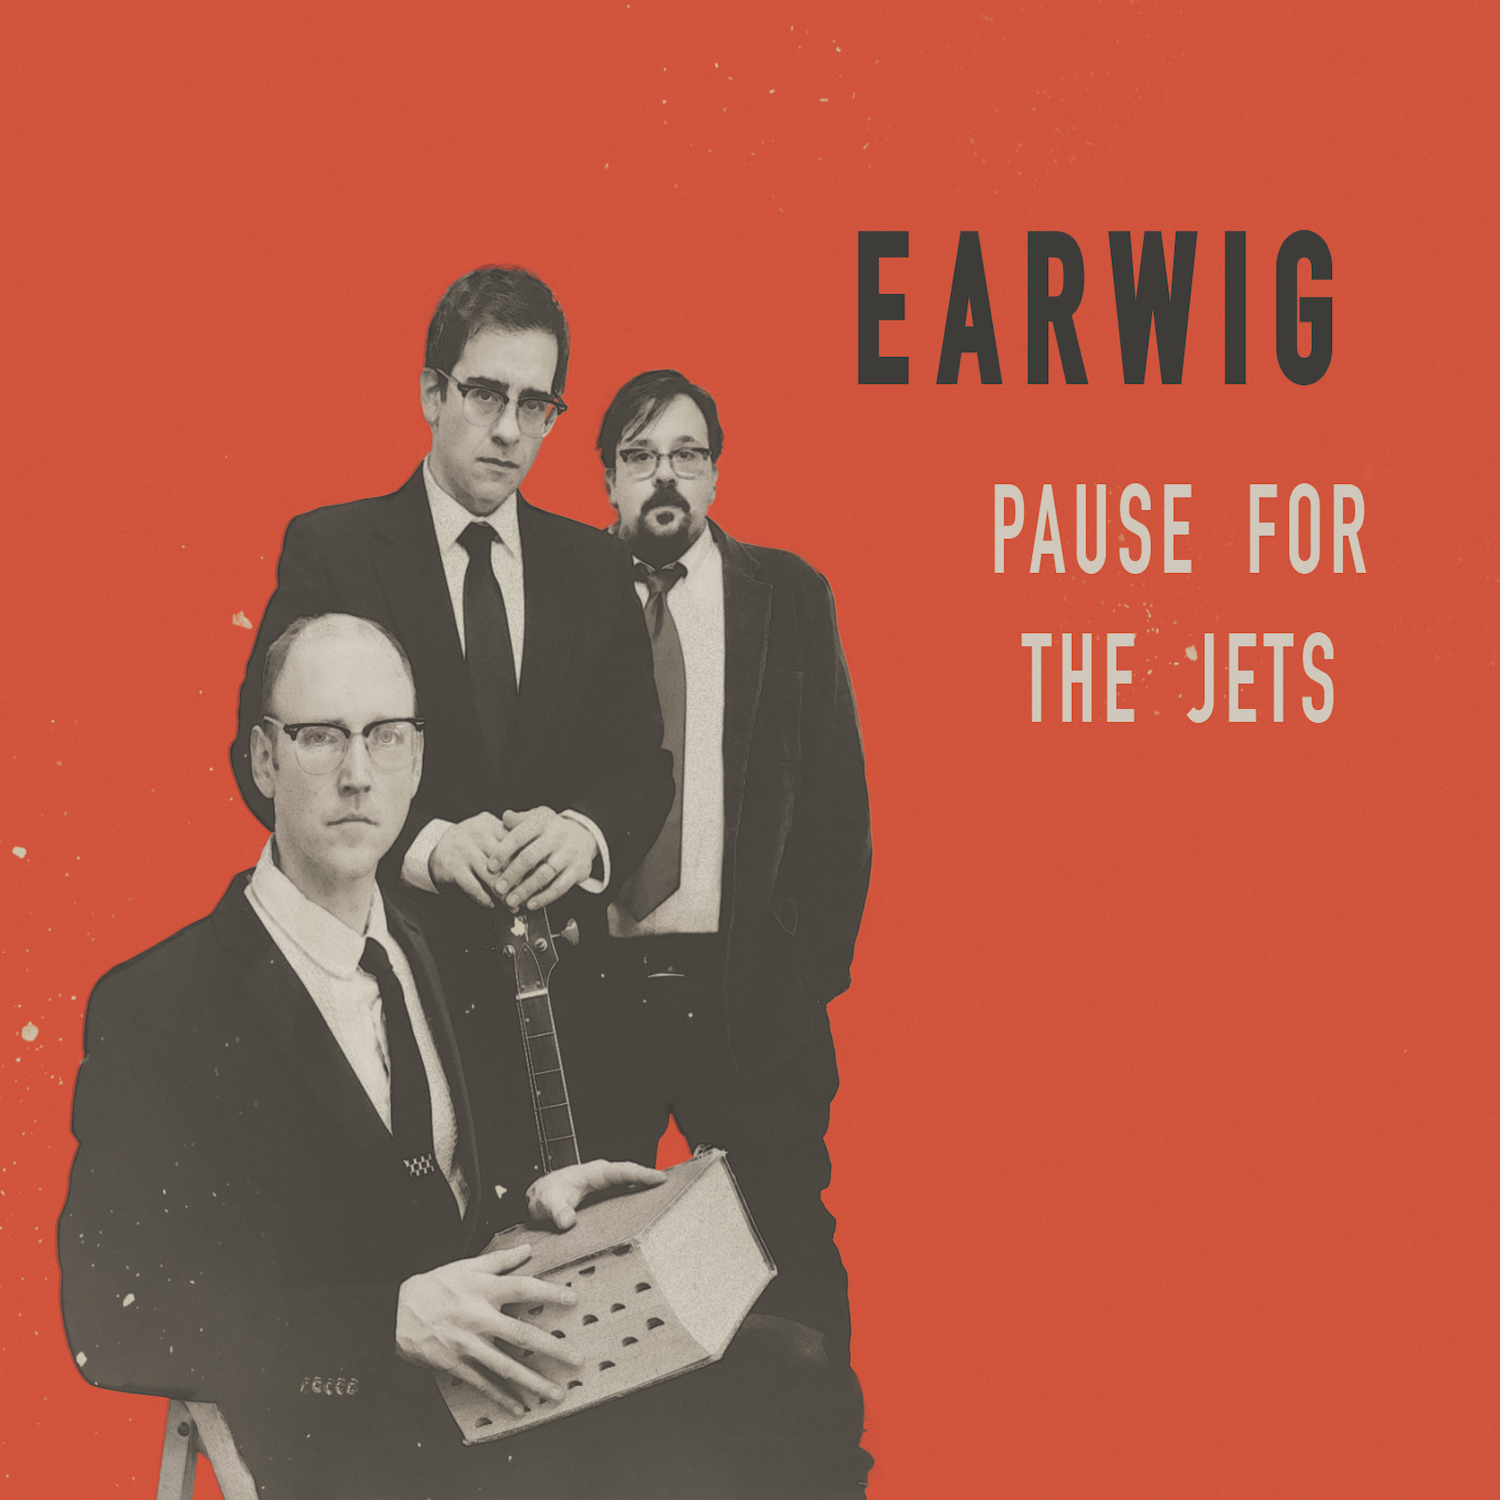 earwig - Pause for the jets